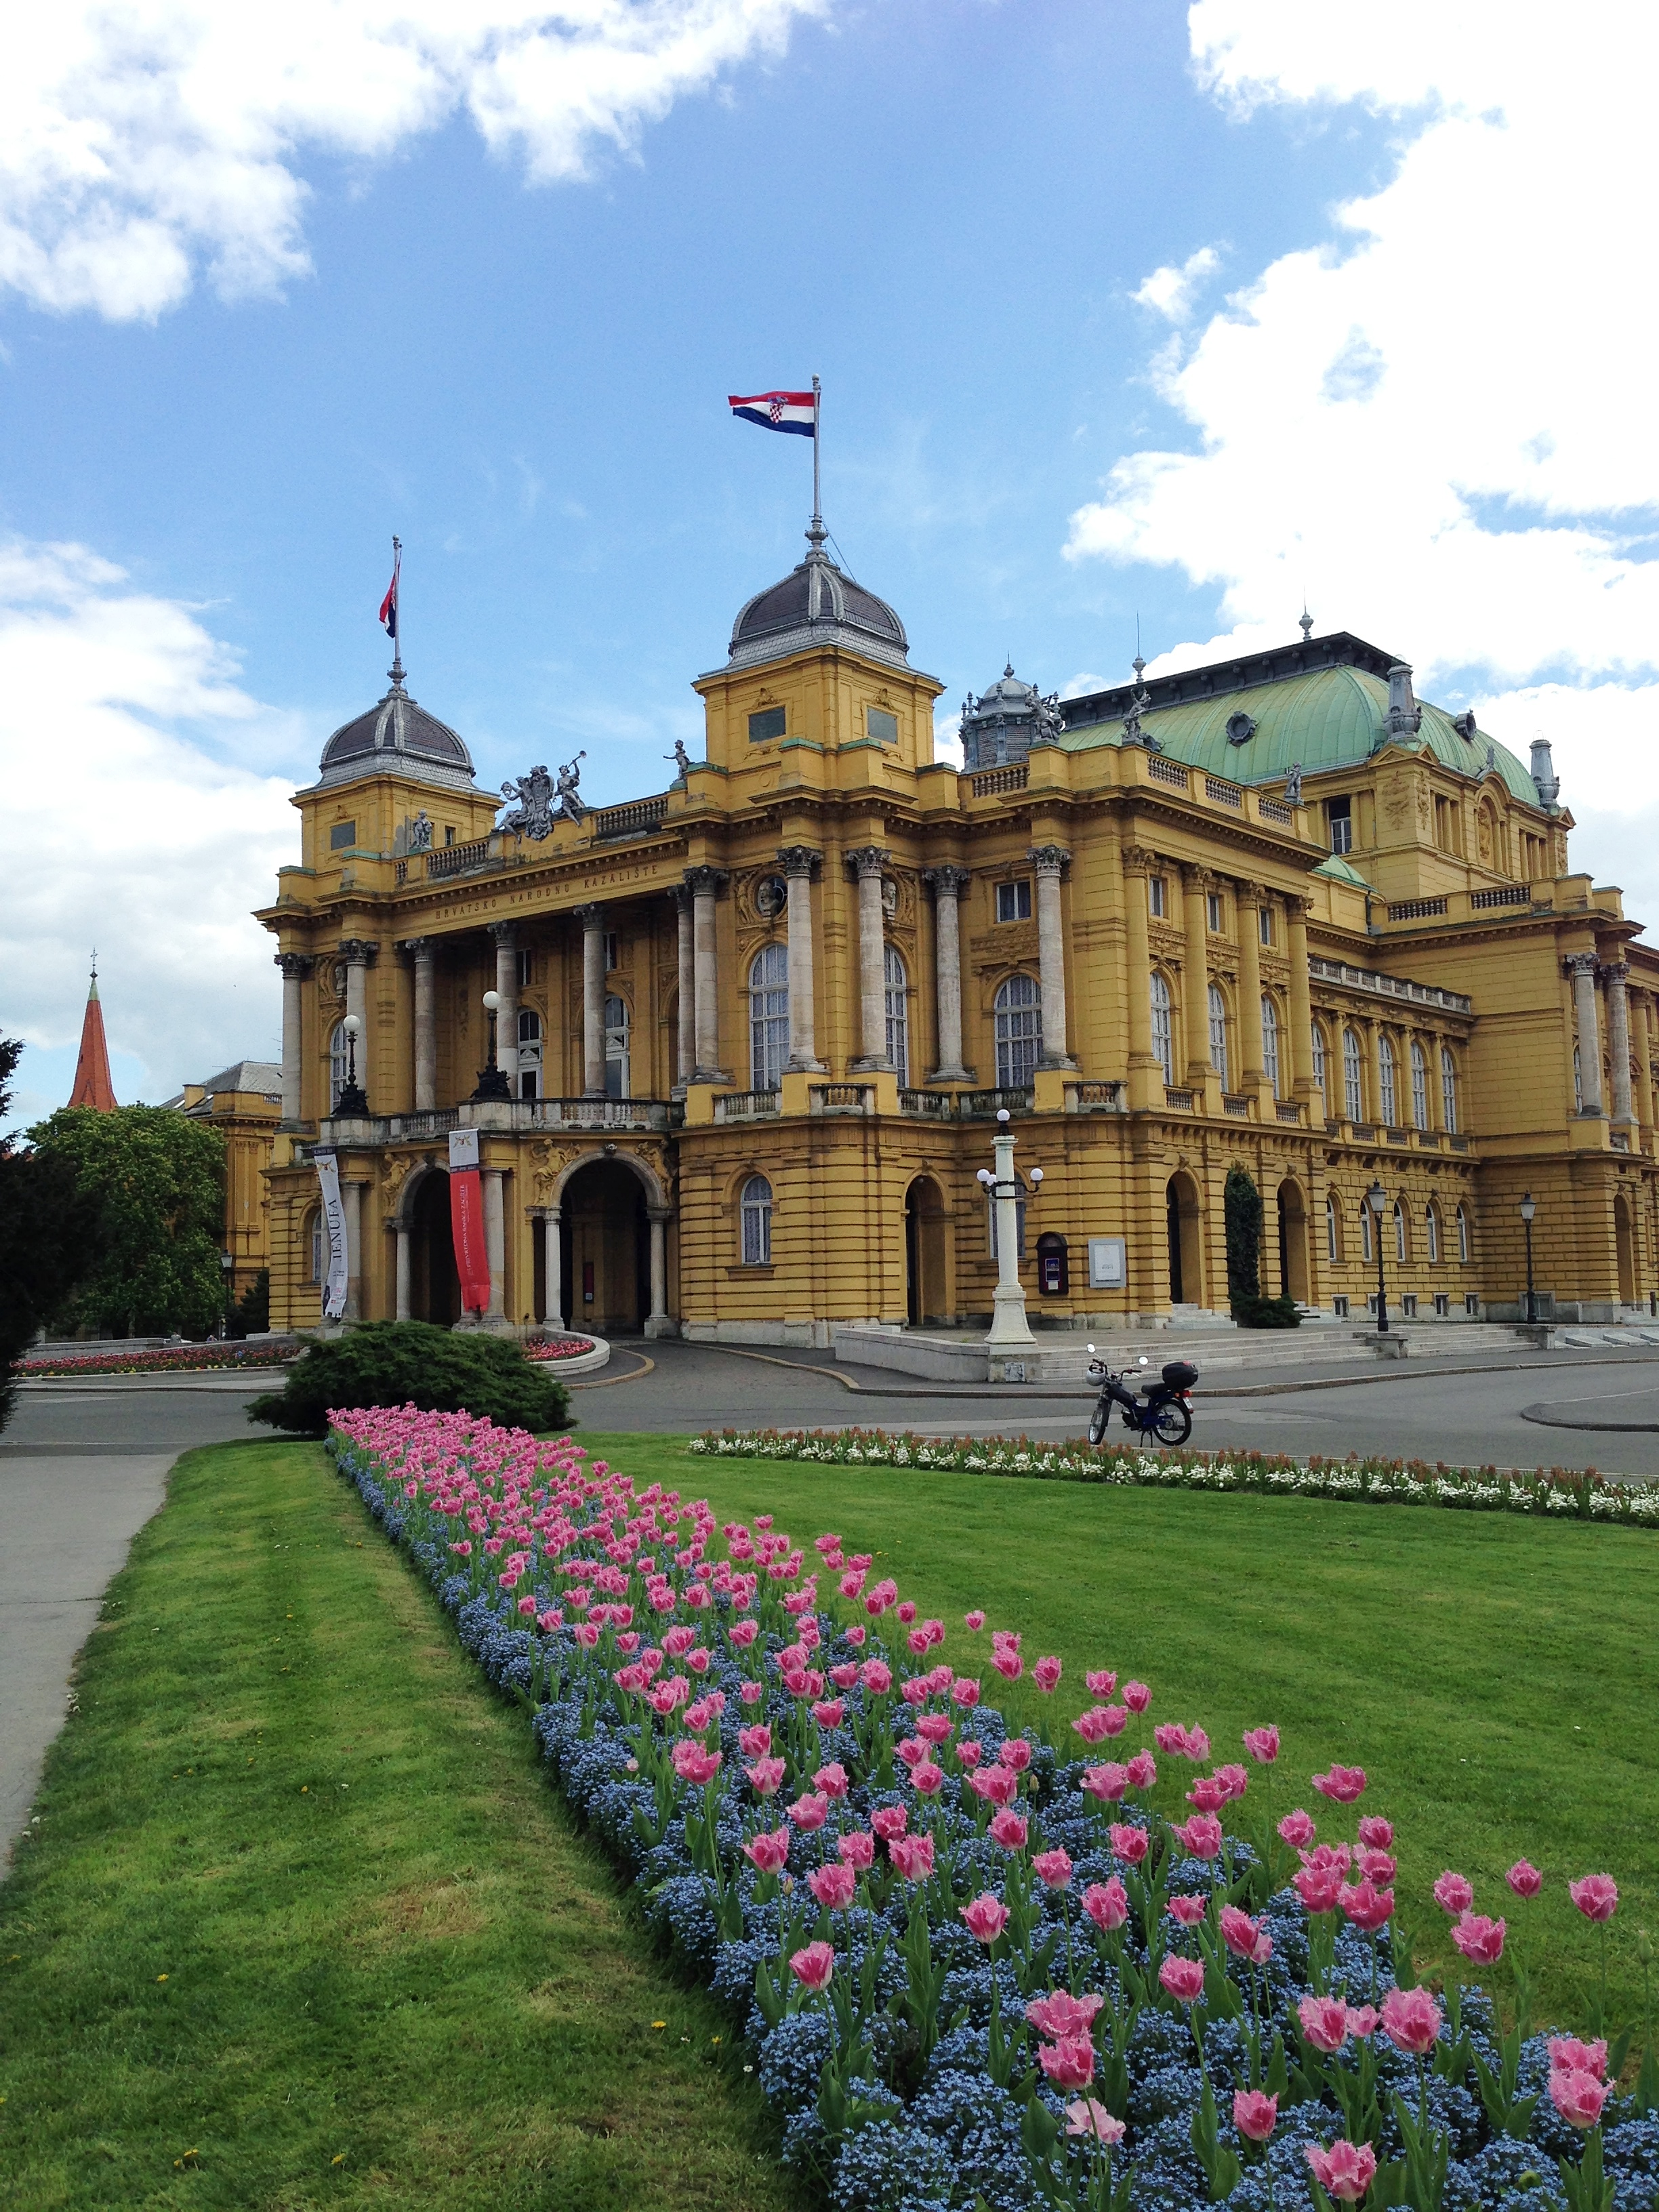 zagreb croatia travel guide shershegoes.com